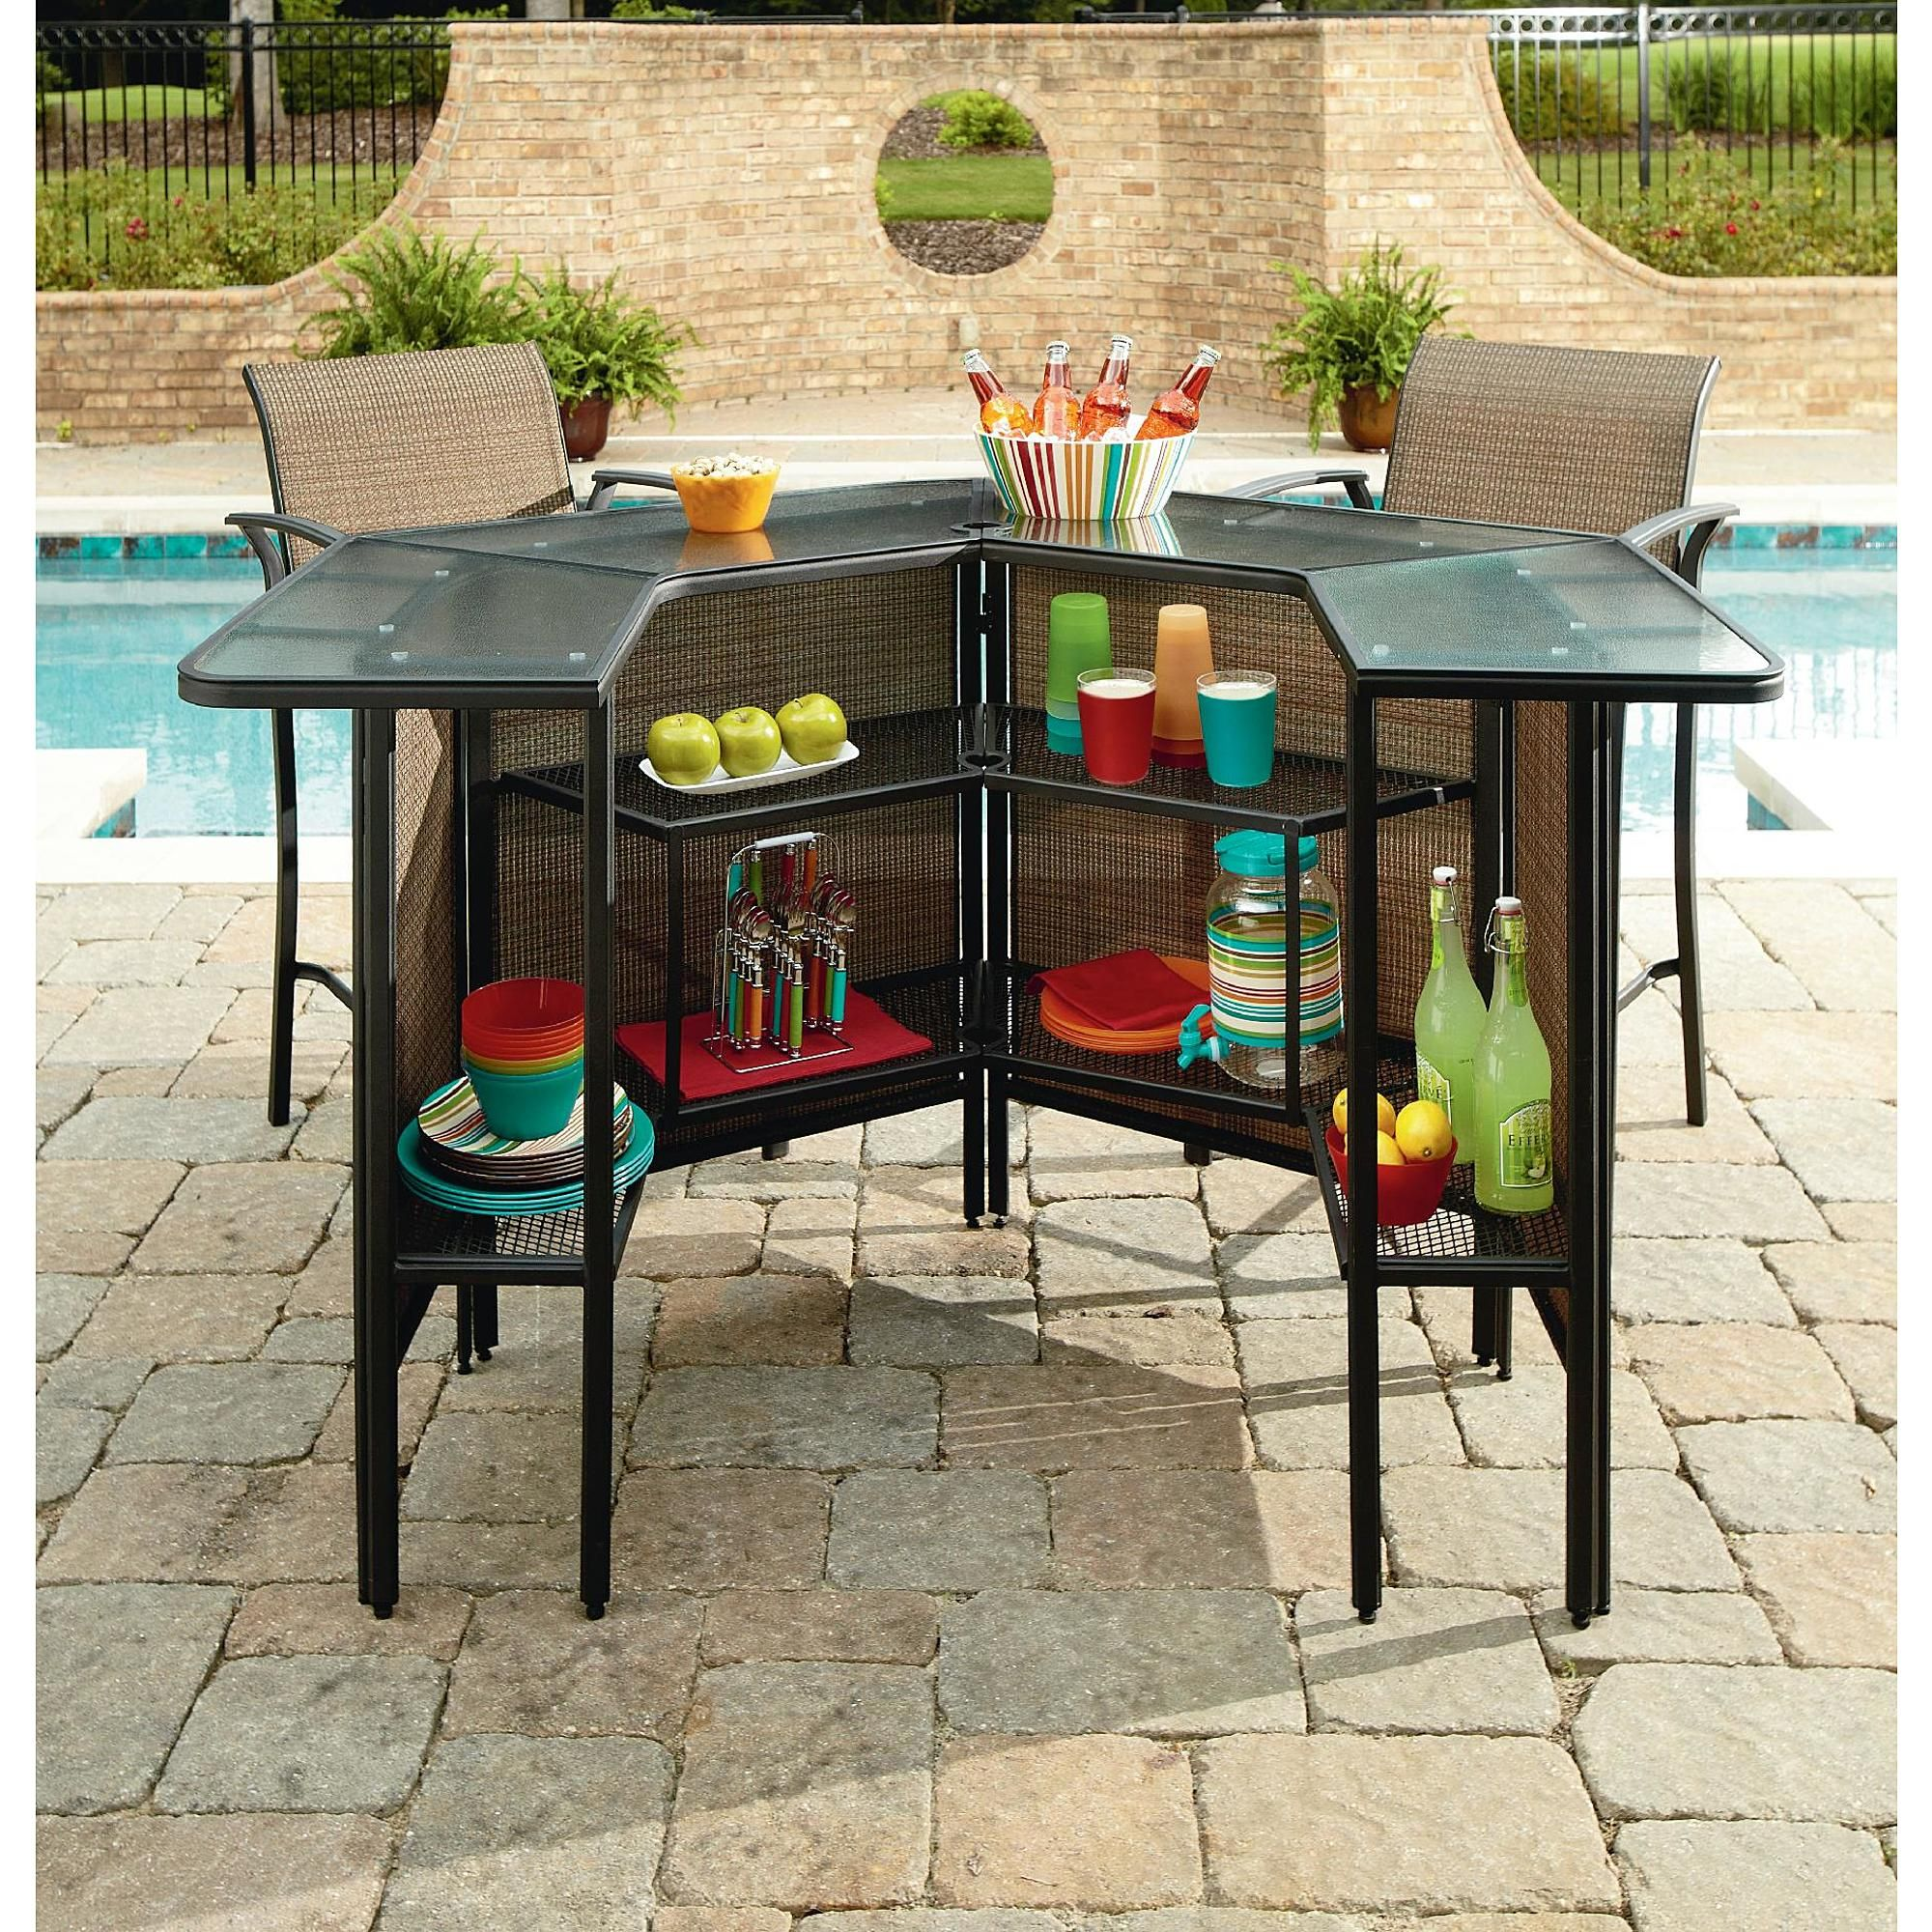 patio products rattan bars set com bar stools choice best table walmart outdoor furniture ip garden wicker backyard